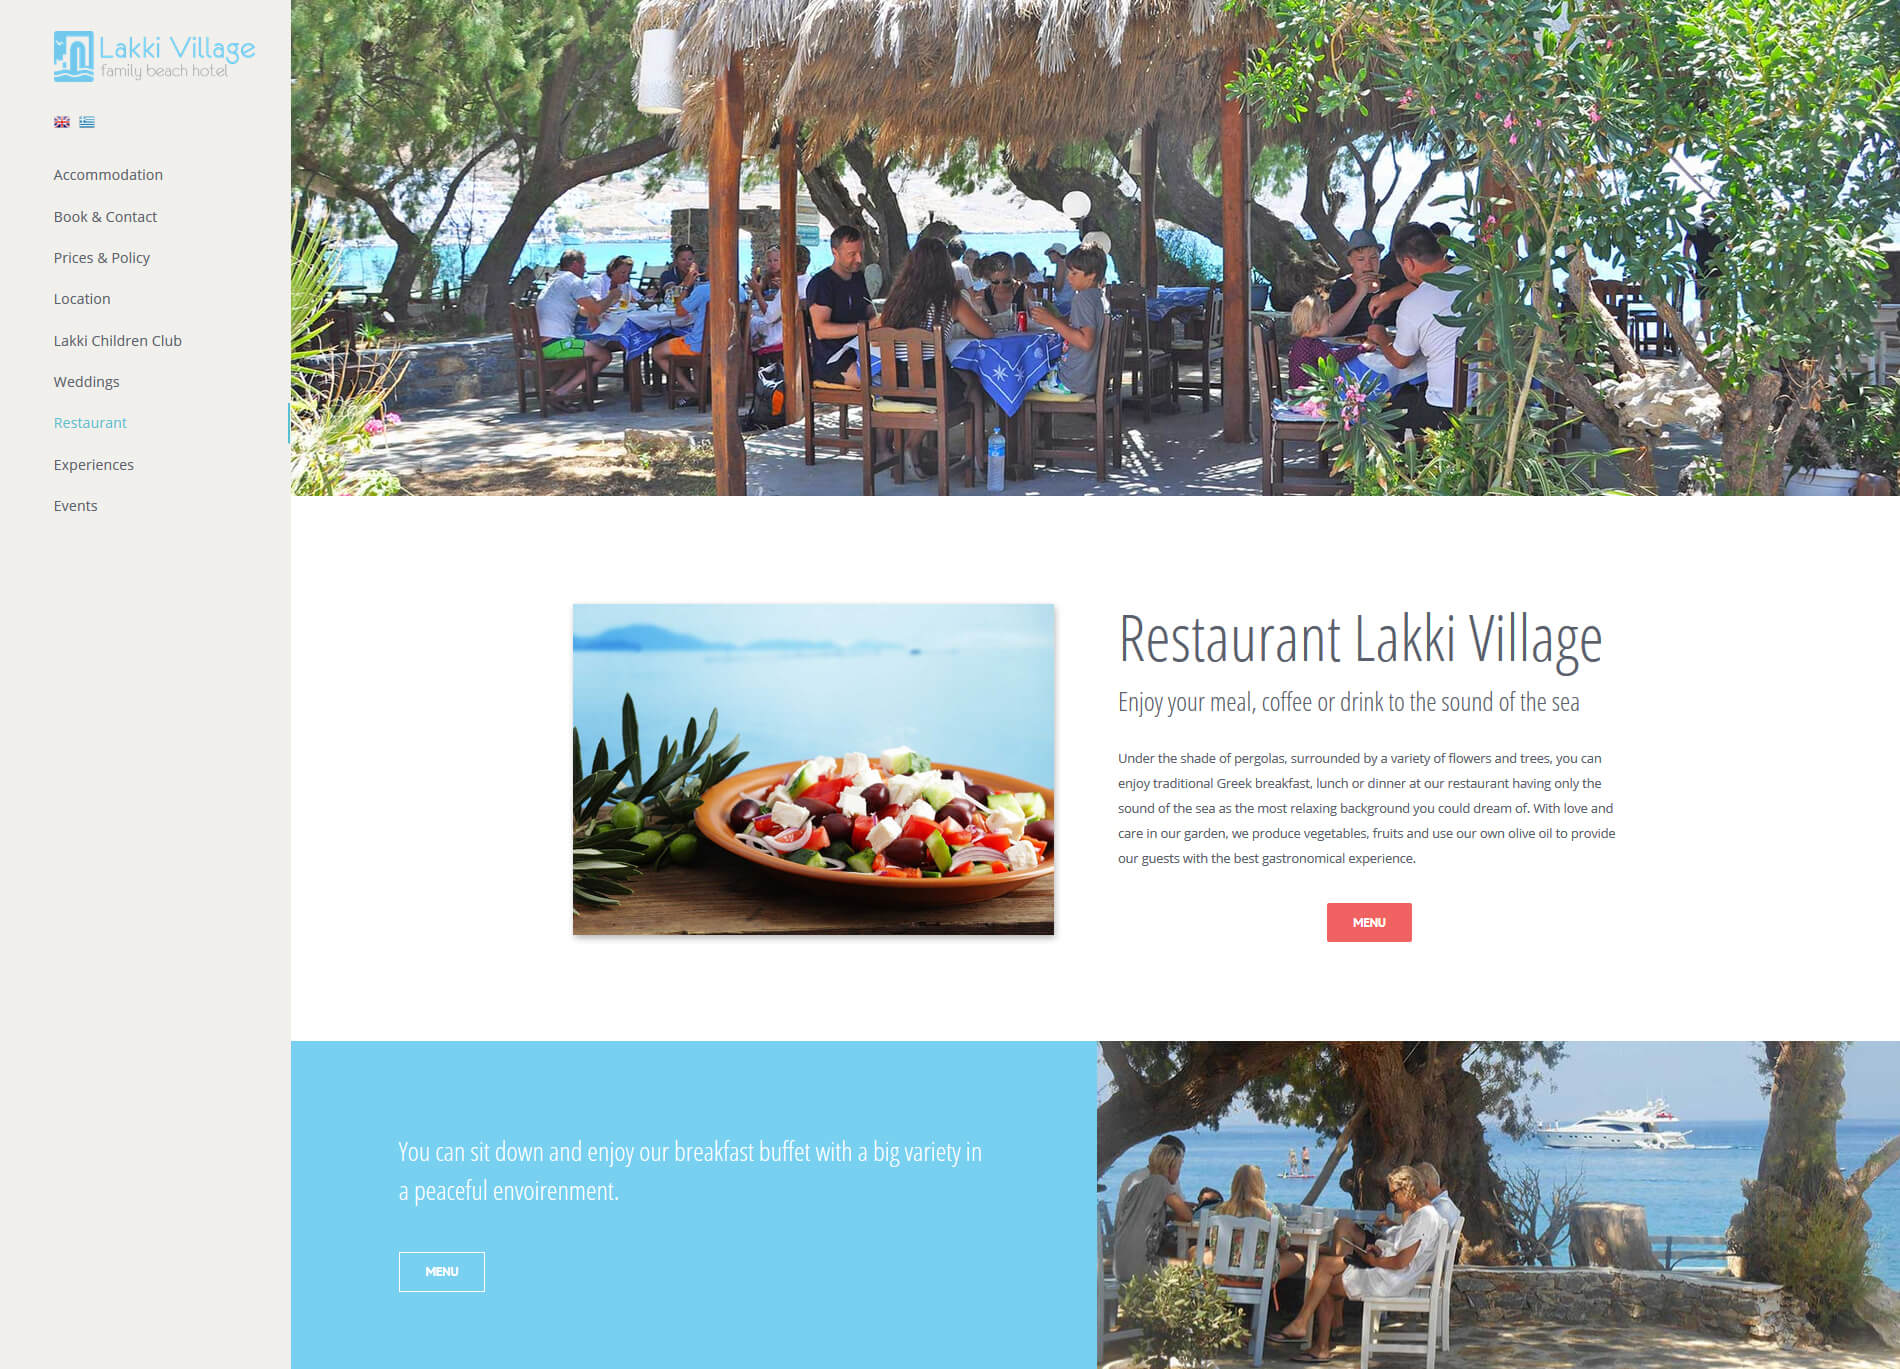 Web design anweb Lakki Village Family Beach Hotel